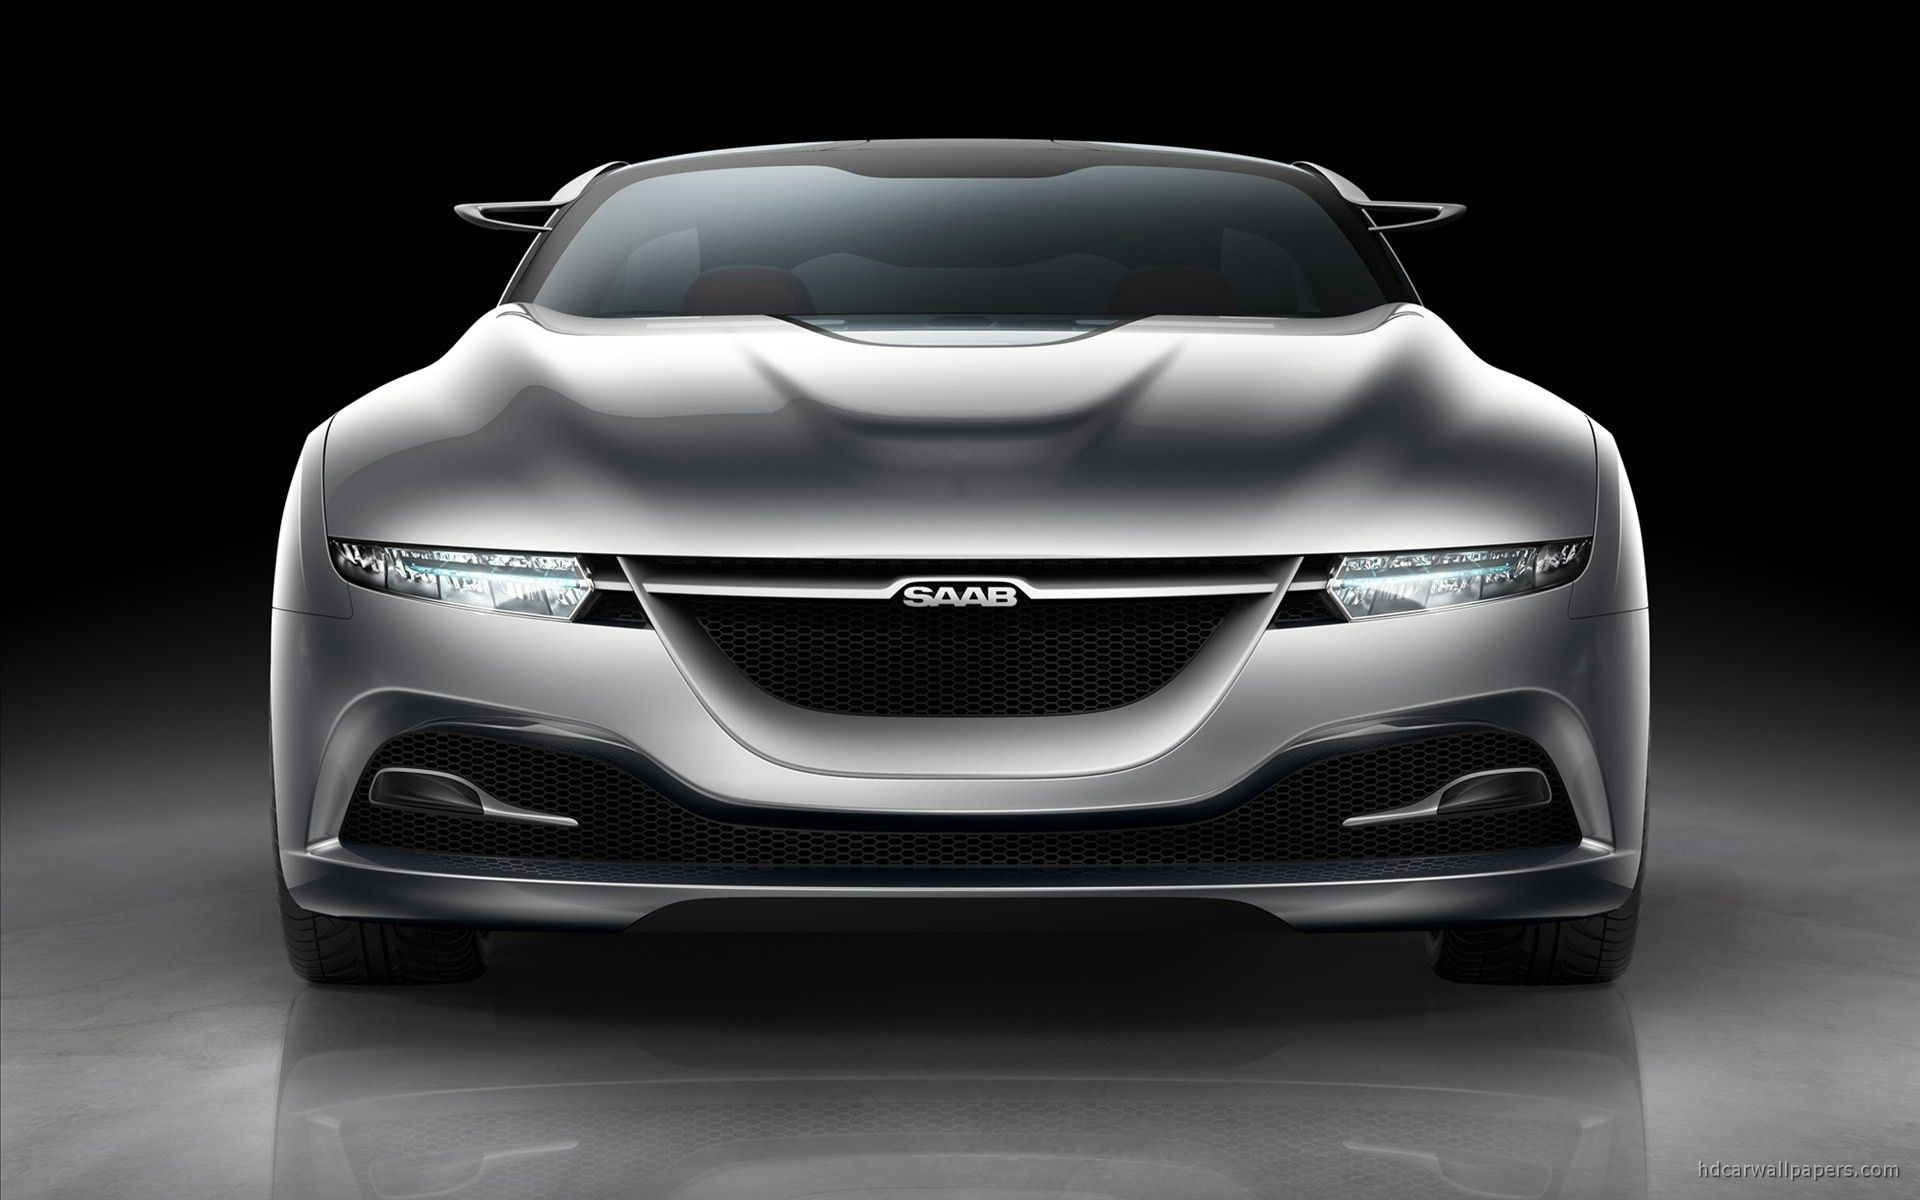 Pin by Stacey White on Saab Cars Pictures | Pinterest | BMW, Cars ...